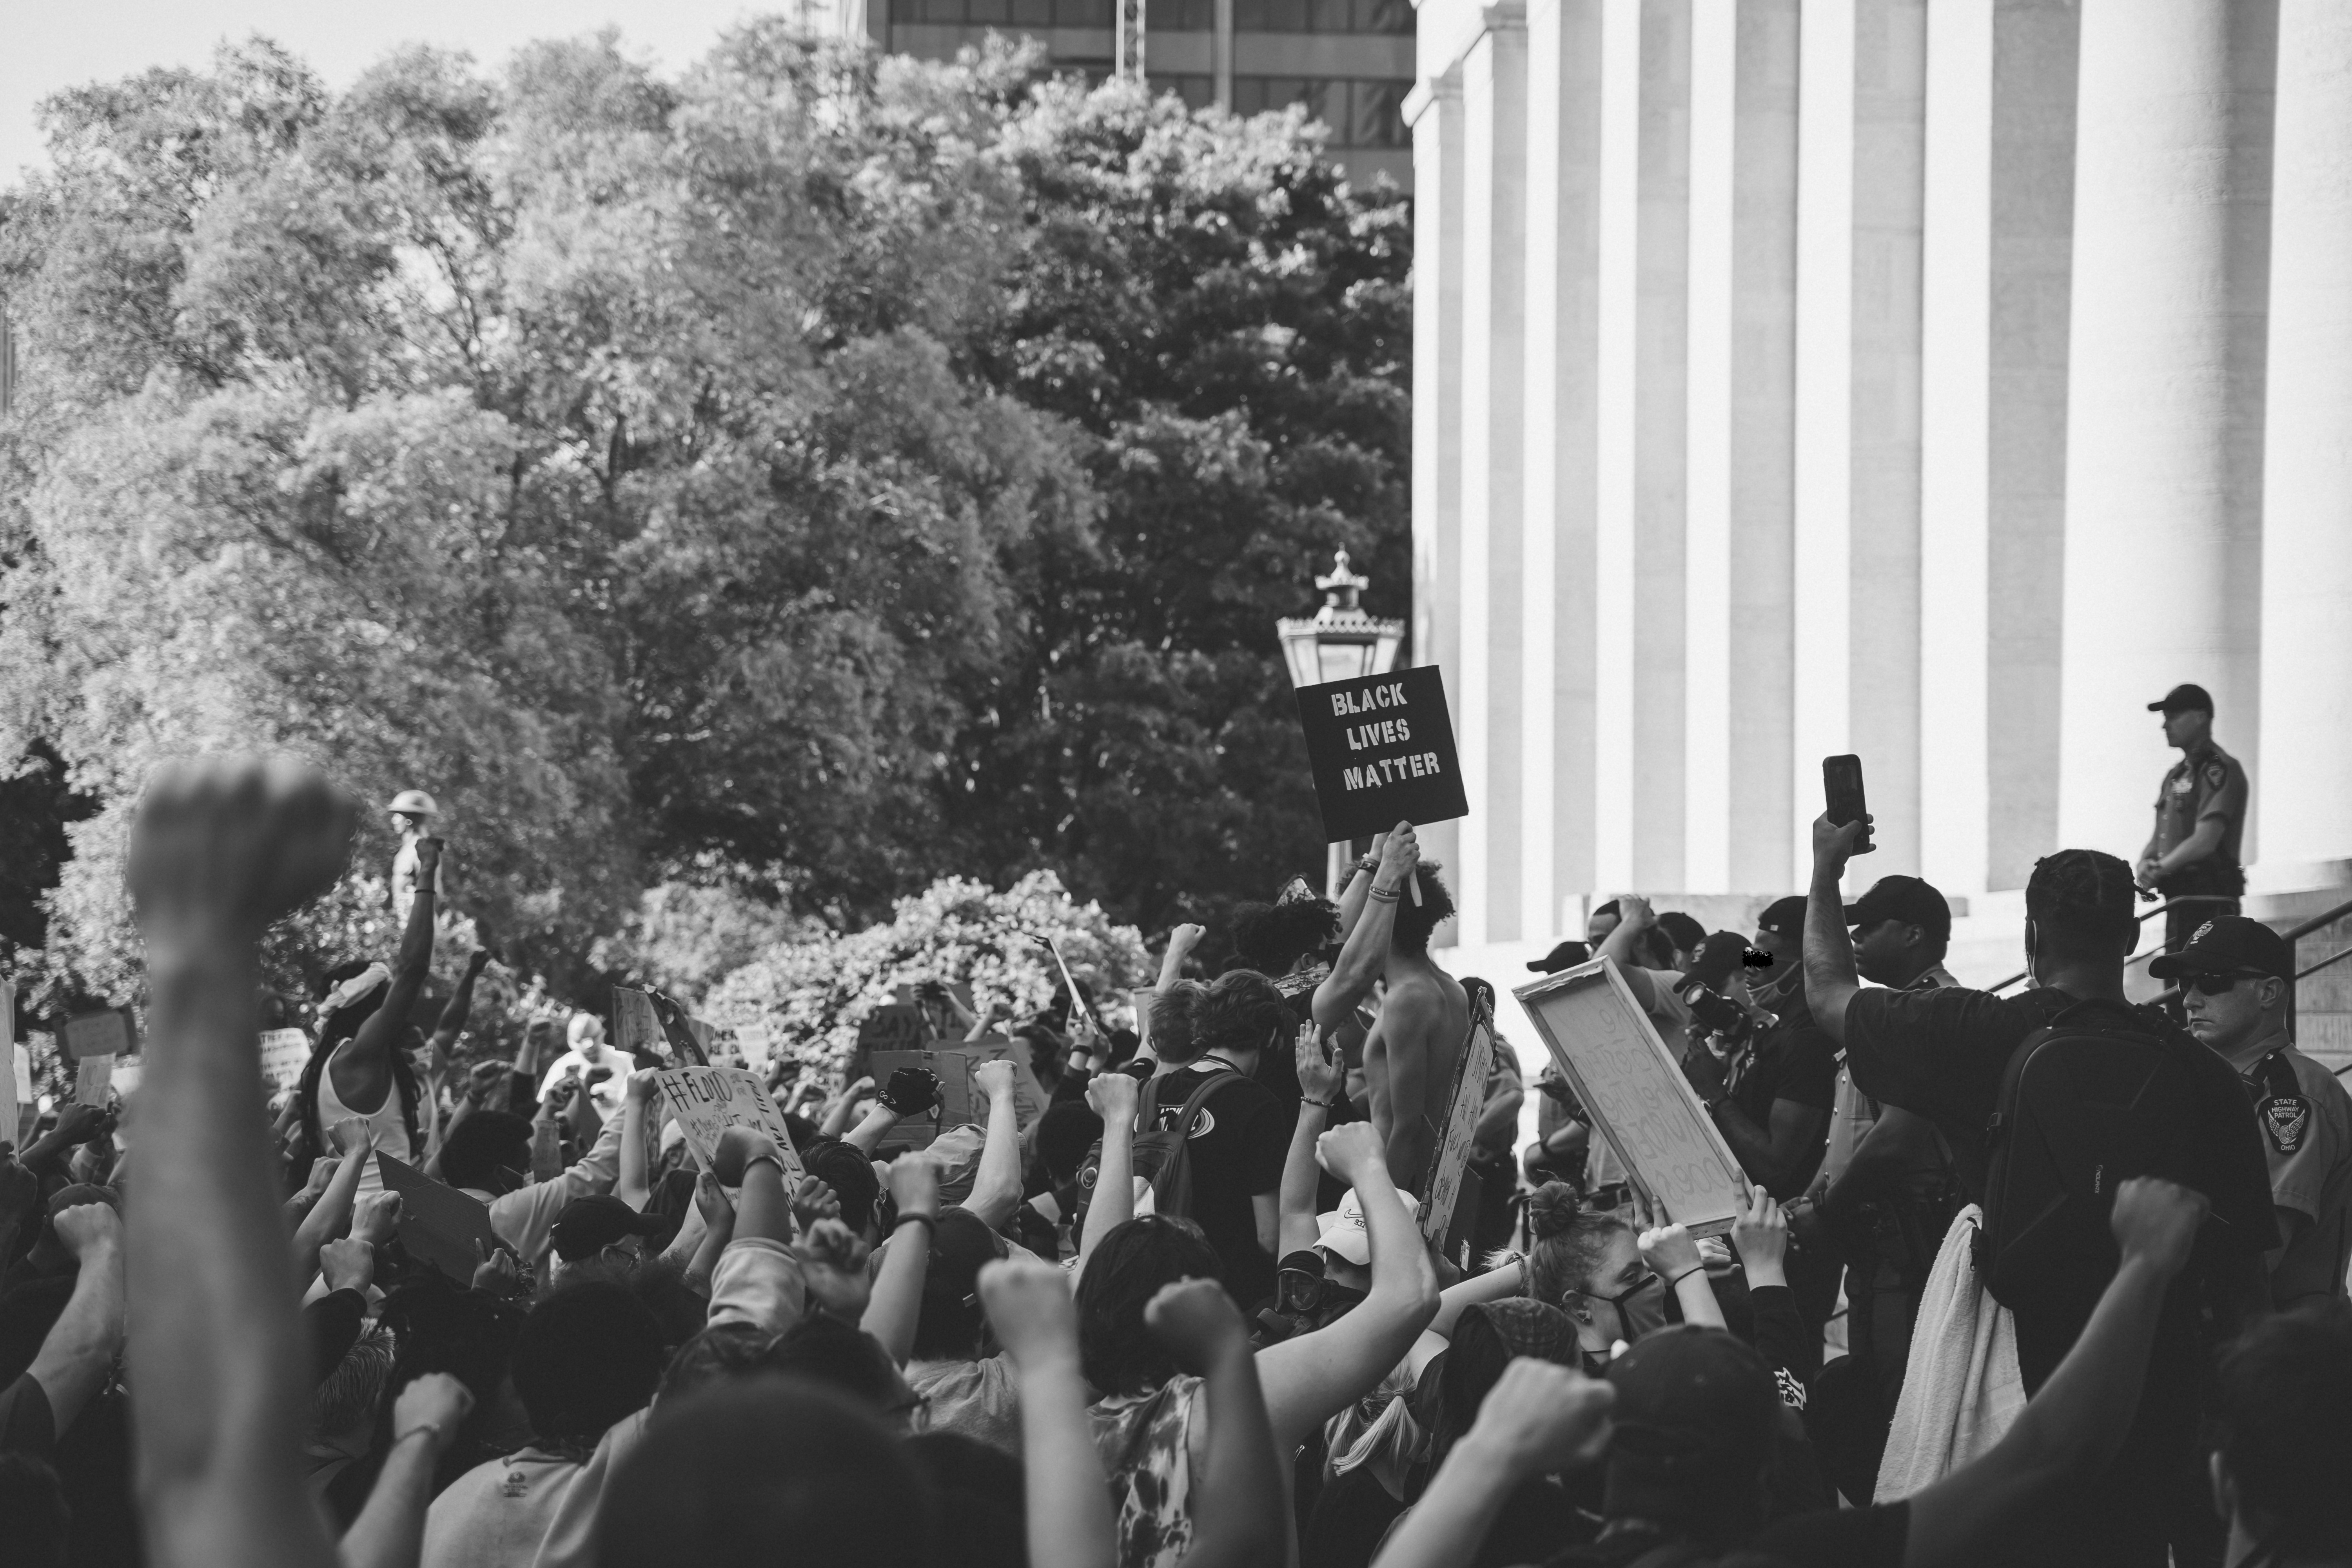 "Black and white photo shows BLM protestors at Ohio State house. The viewer stands behind the protestors on their right-hand side. Majority of the protestors have bare arms and raised closed fists or signs and fill the bottom third of the image. There is one readable sign: ""Black Lives Matter."" The pillars of the state house fill the right half of the image above the protestors. The top left half of the image shows leafy trees."